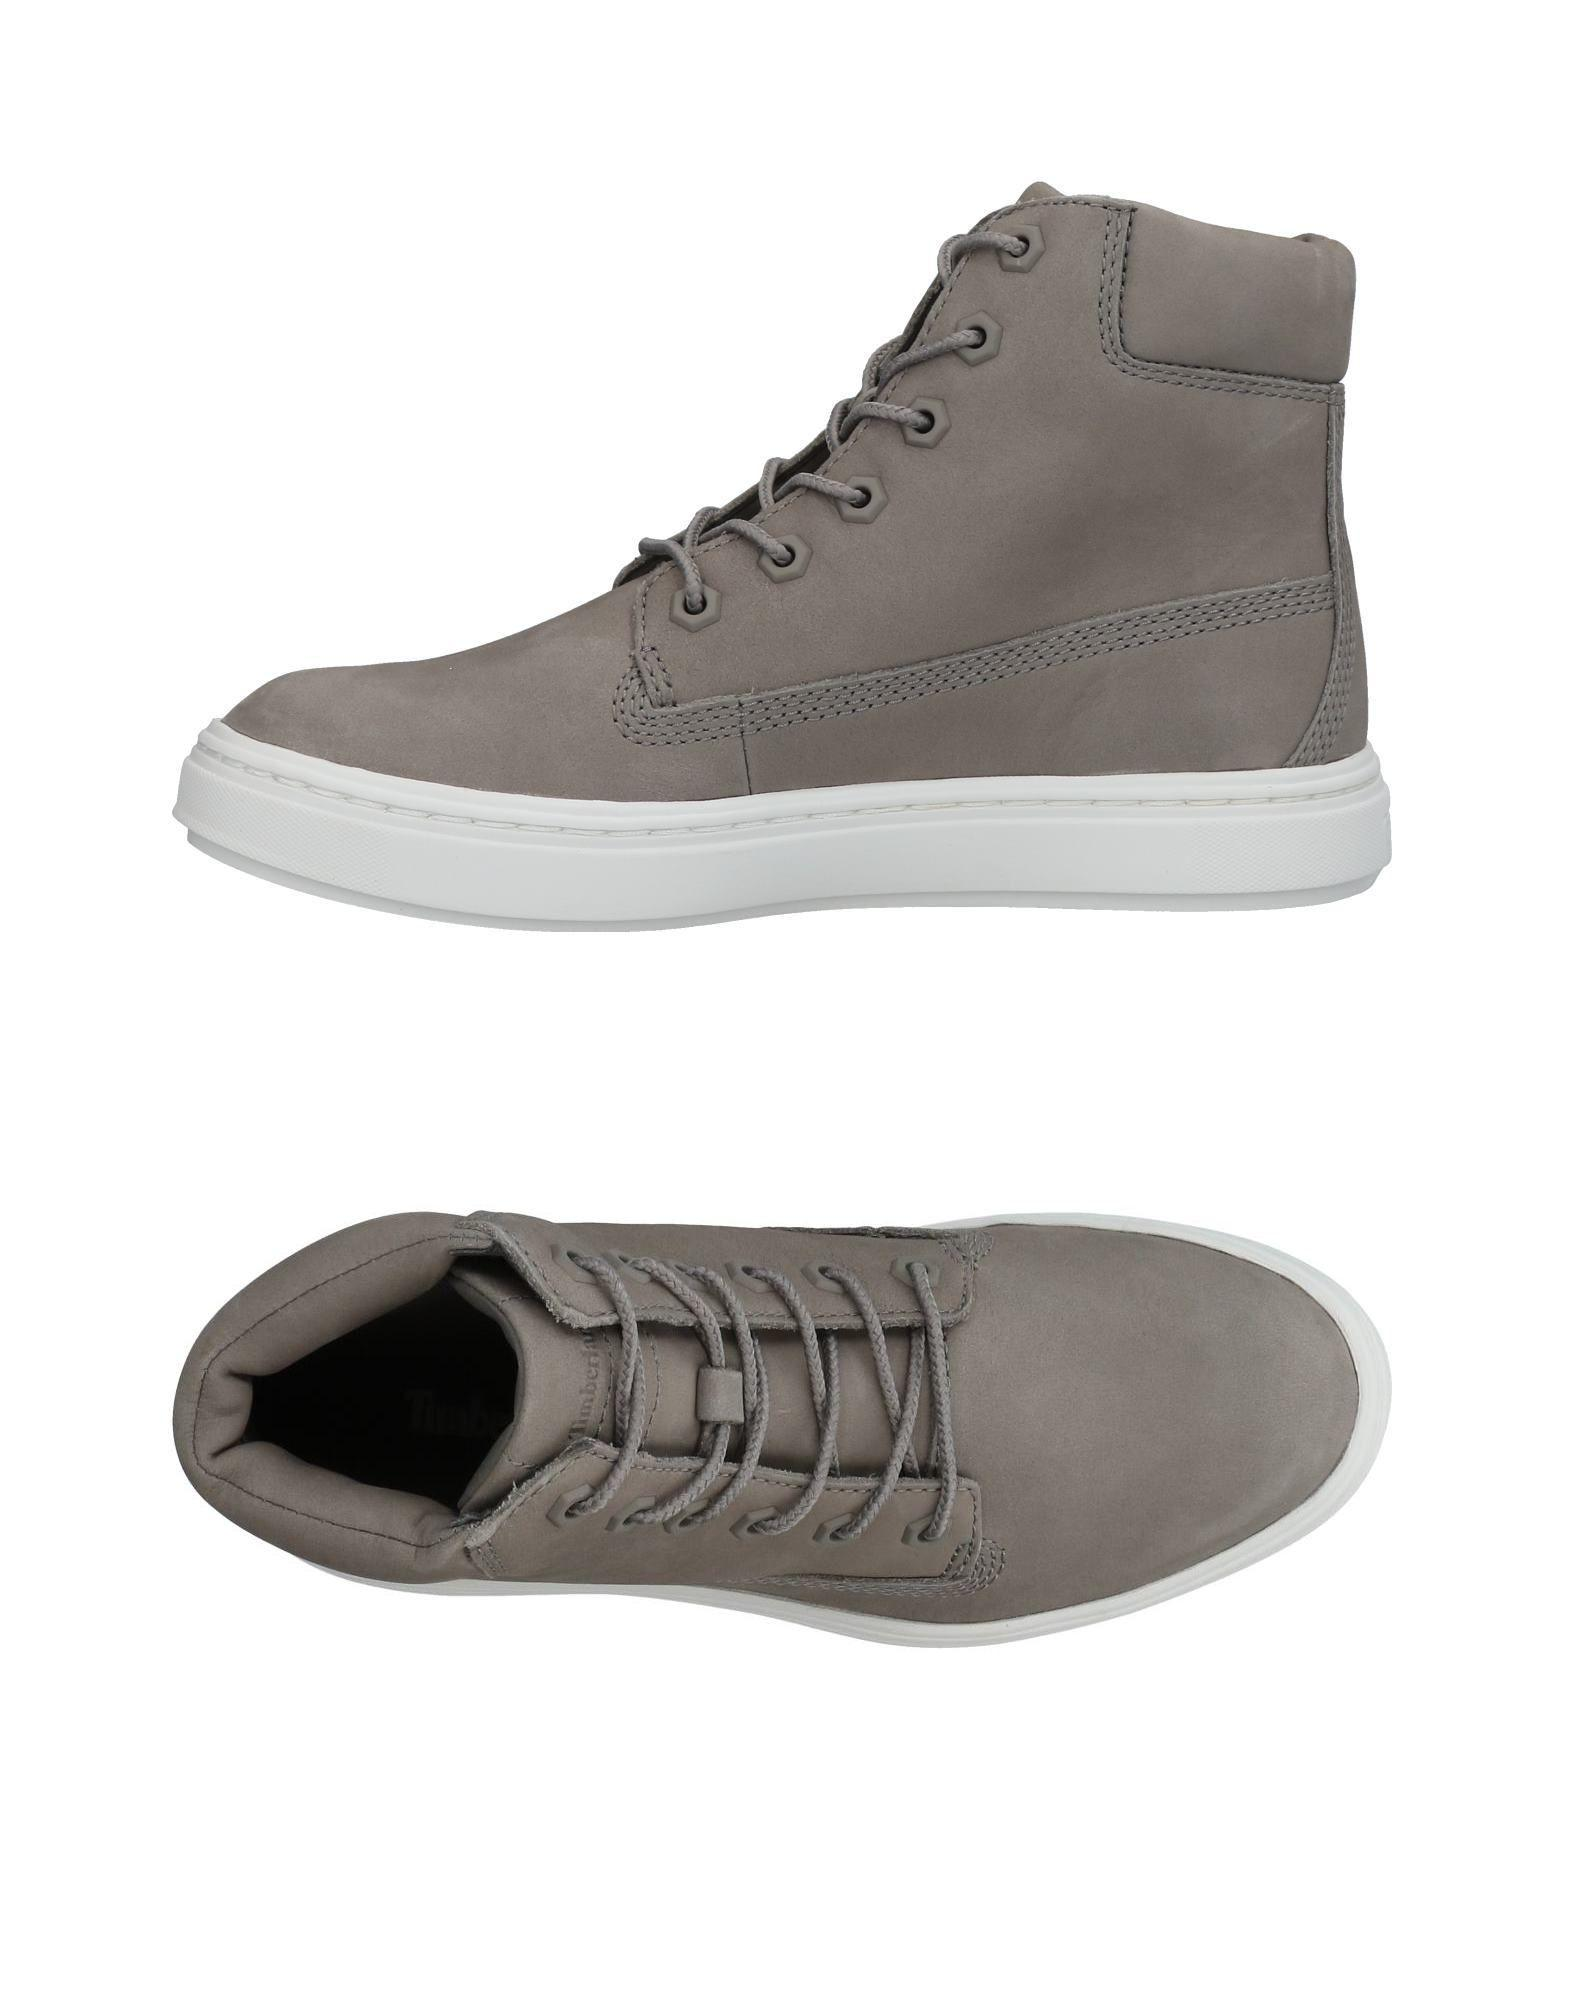 Timberland Sneakers In Light Grey